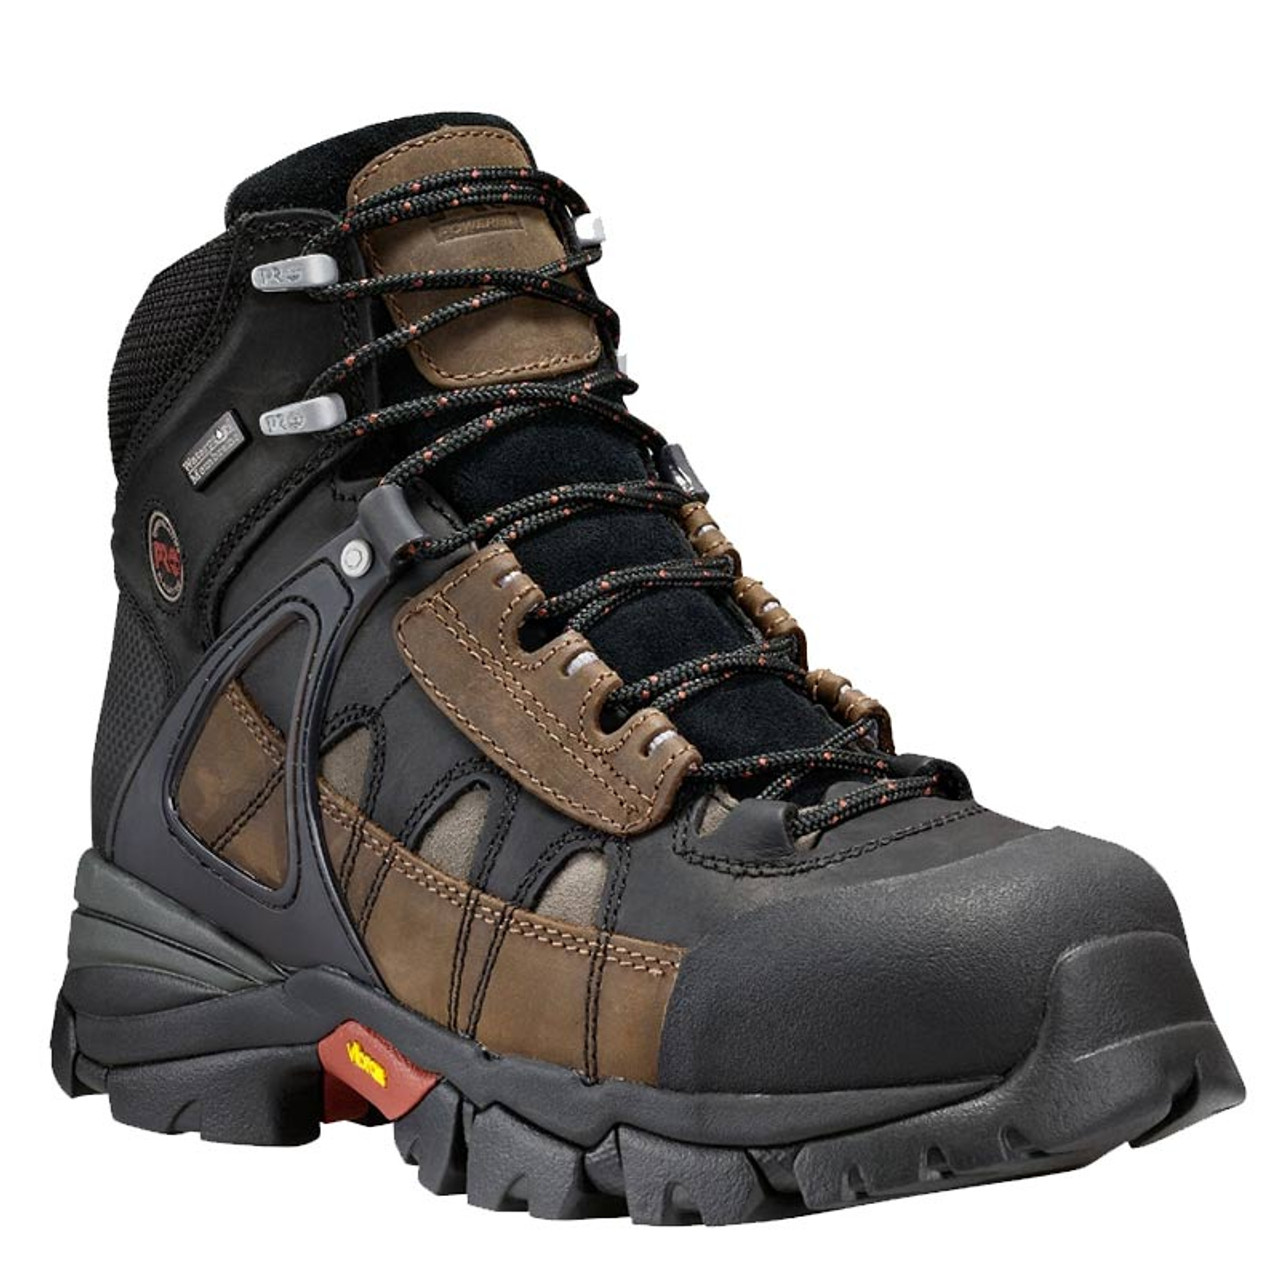 c7c020579f4 Timberland PRO 90646214 HYPERION Safety Toe Work Boots